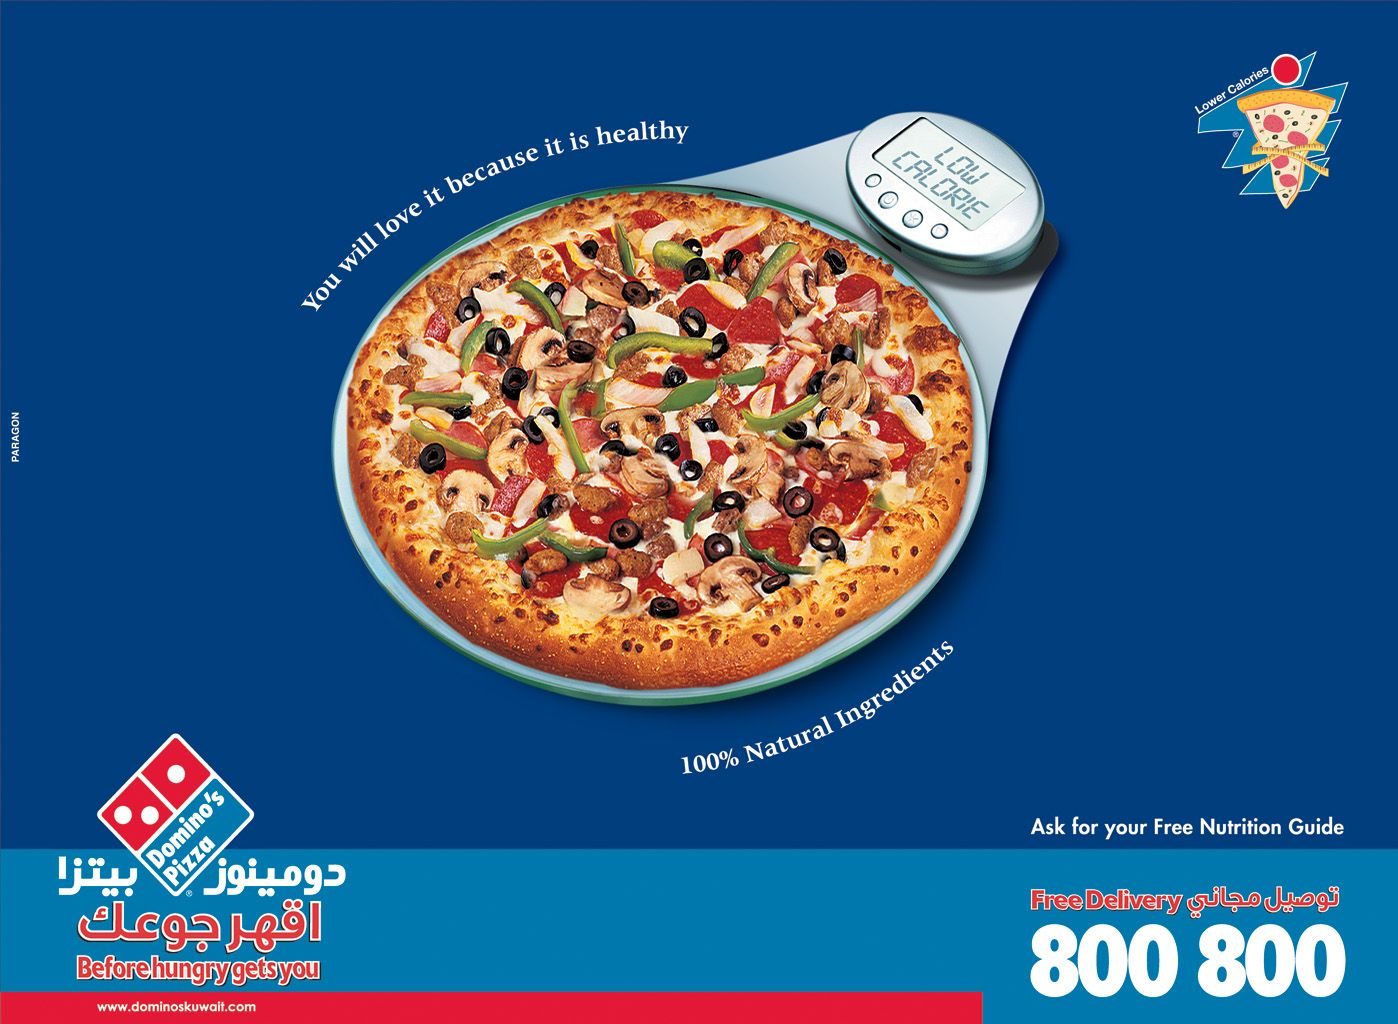 domino s medium 2 topping handmade pan pizza 10 12 15 chapter after dominos made changes to their product they introduced a new advertising campaign that used direct response advertising